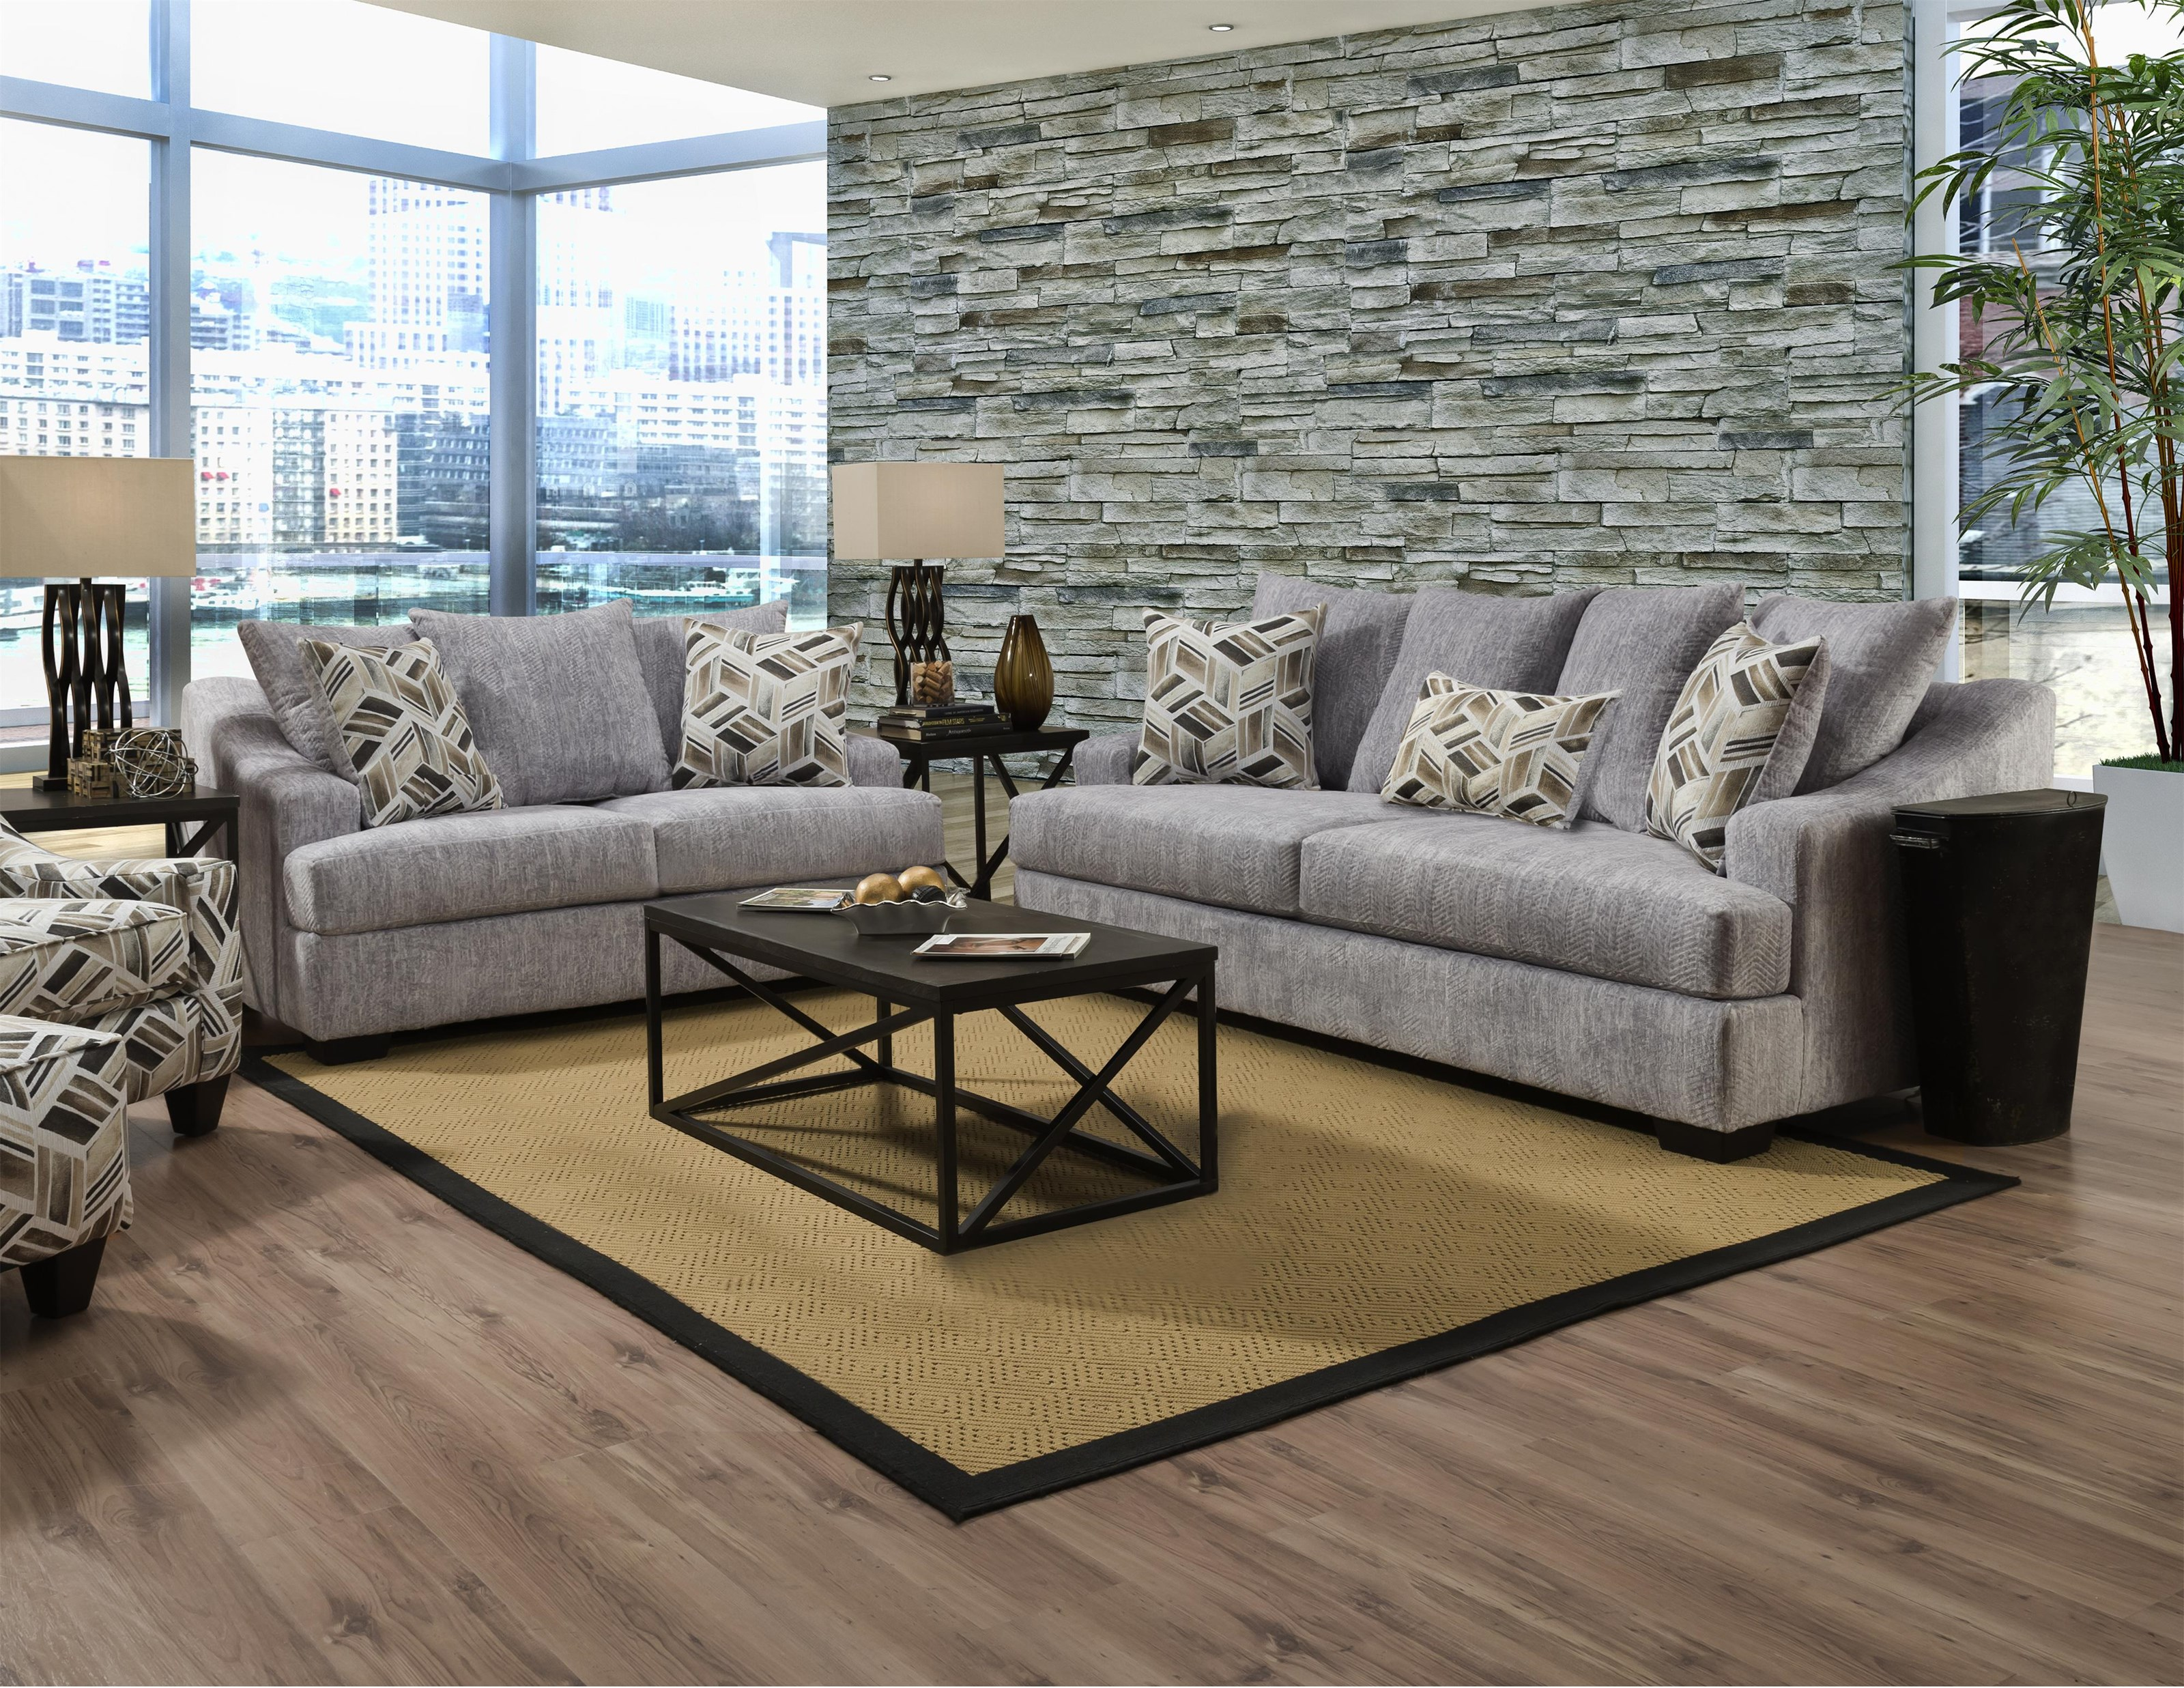 4210 Stationary Living Room Group by Corinthian at VanDrie Home Furnishings